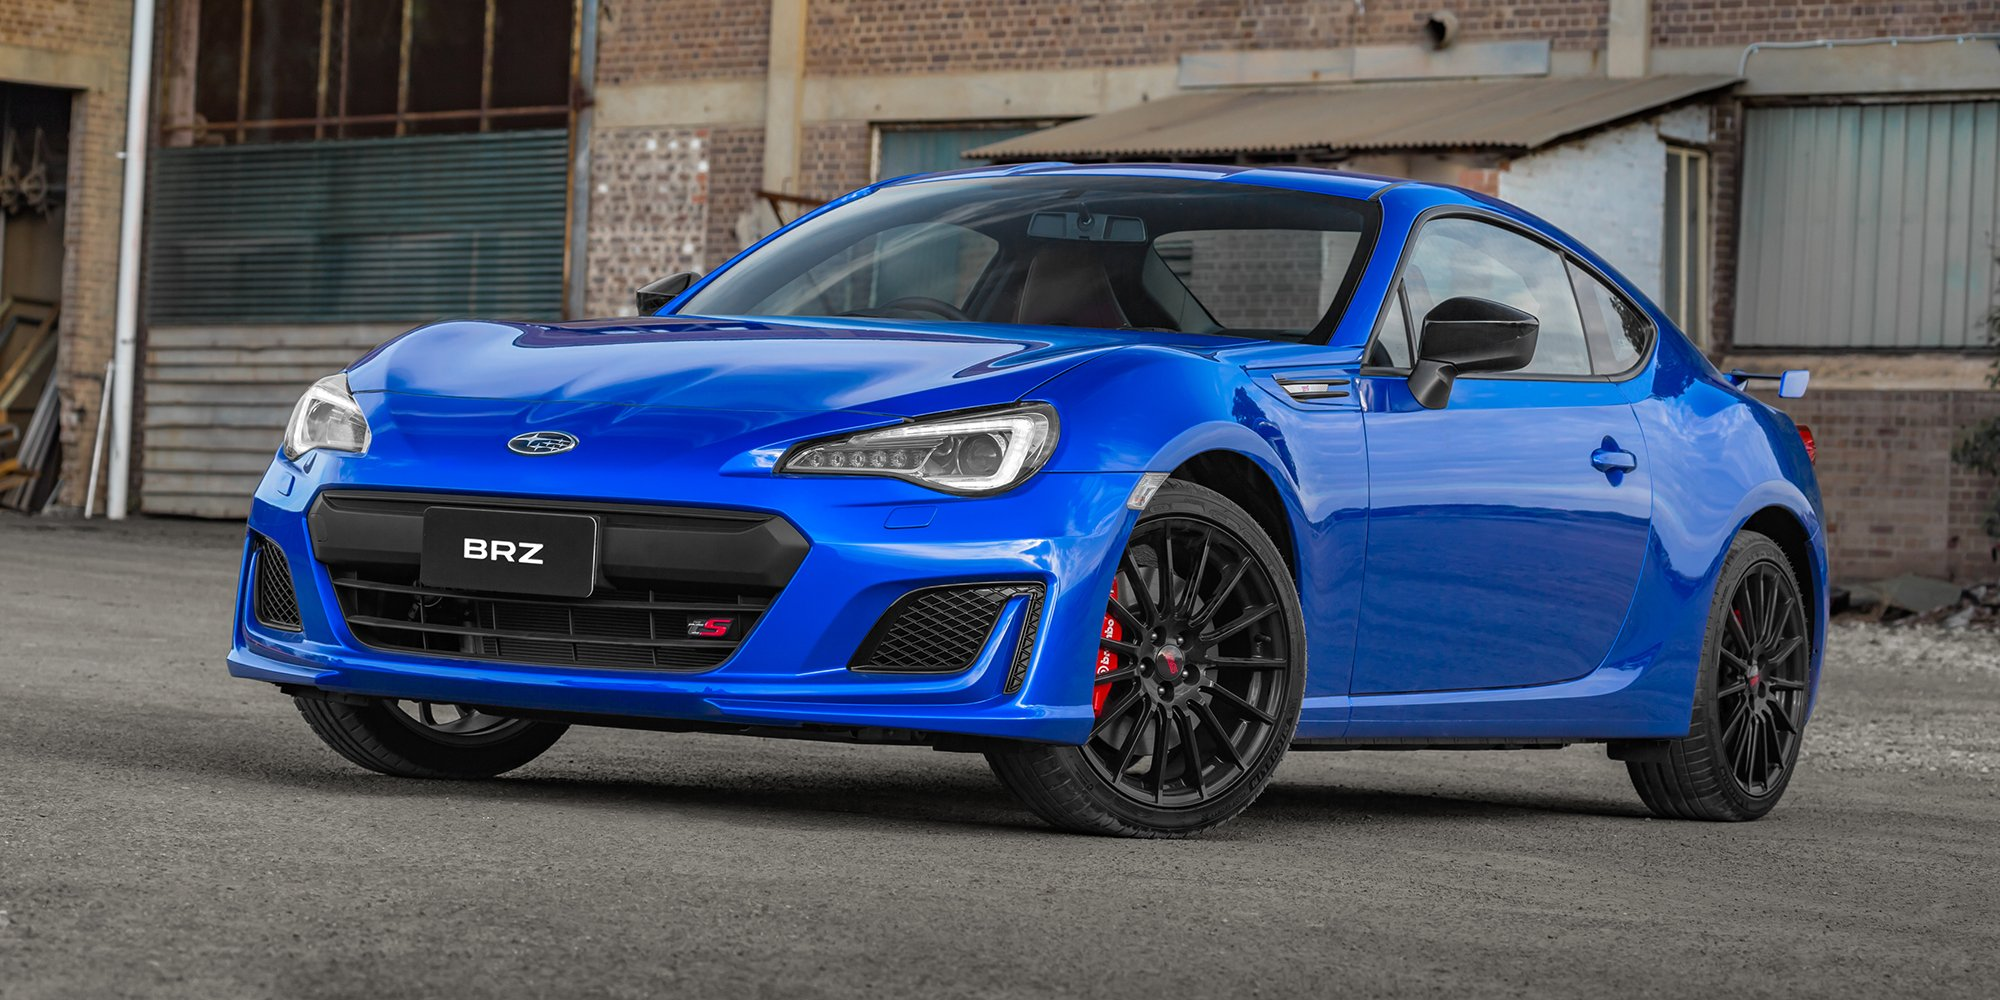 2018 Subaru Brz Price >> 2018 Subaru BRZ pricing and specs - Photos (1 of 7)